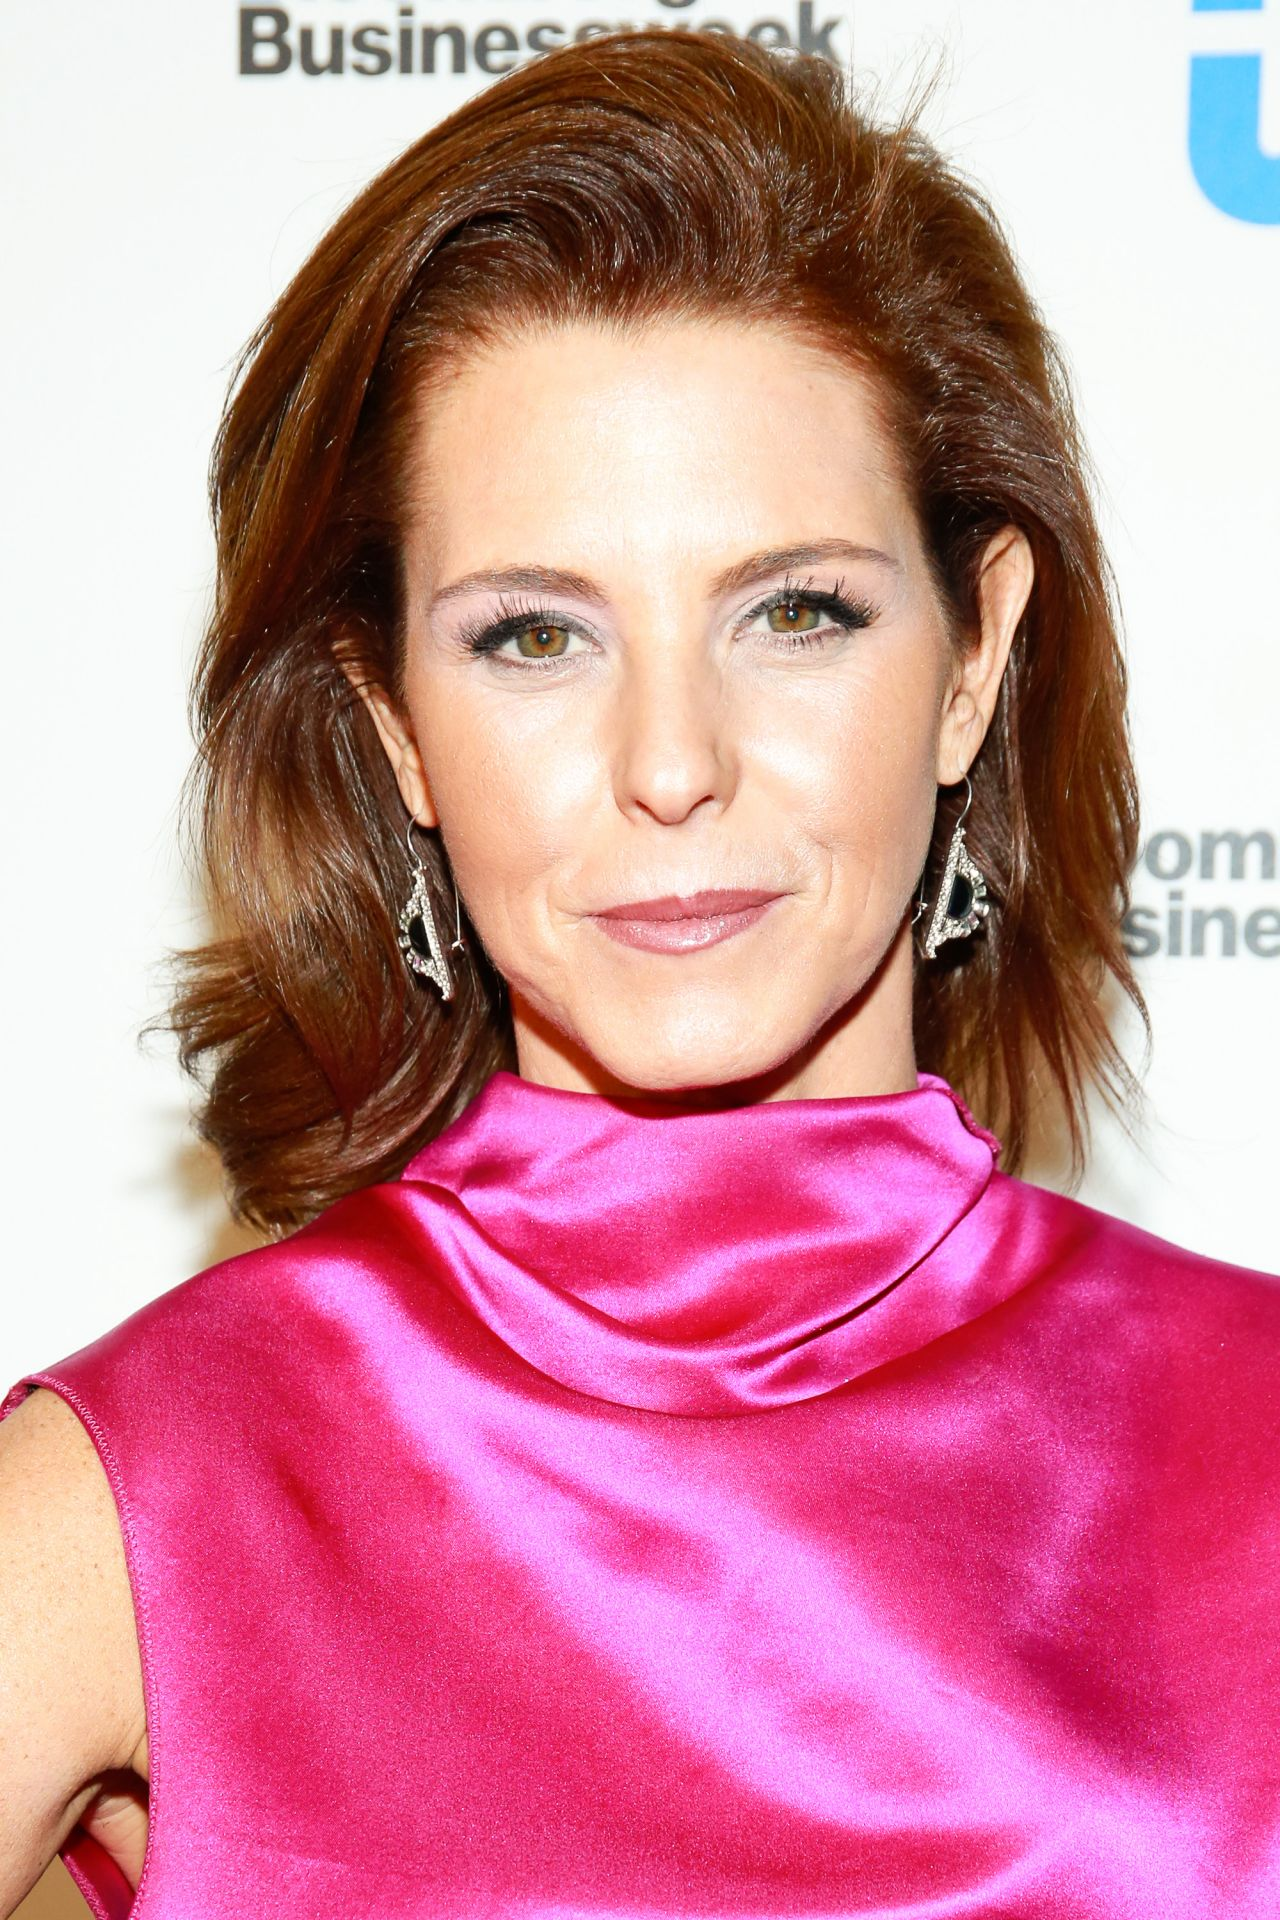 Stephanie Ruhle Bloomberg 50 Awards In New York City